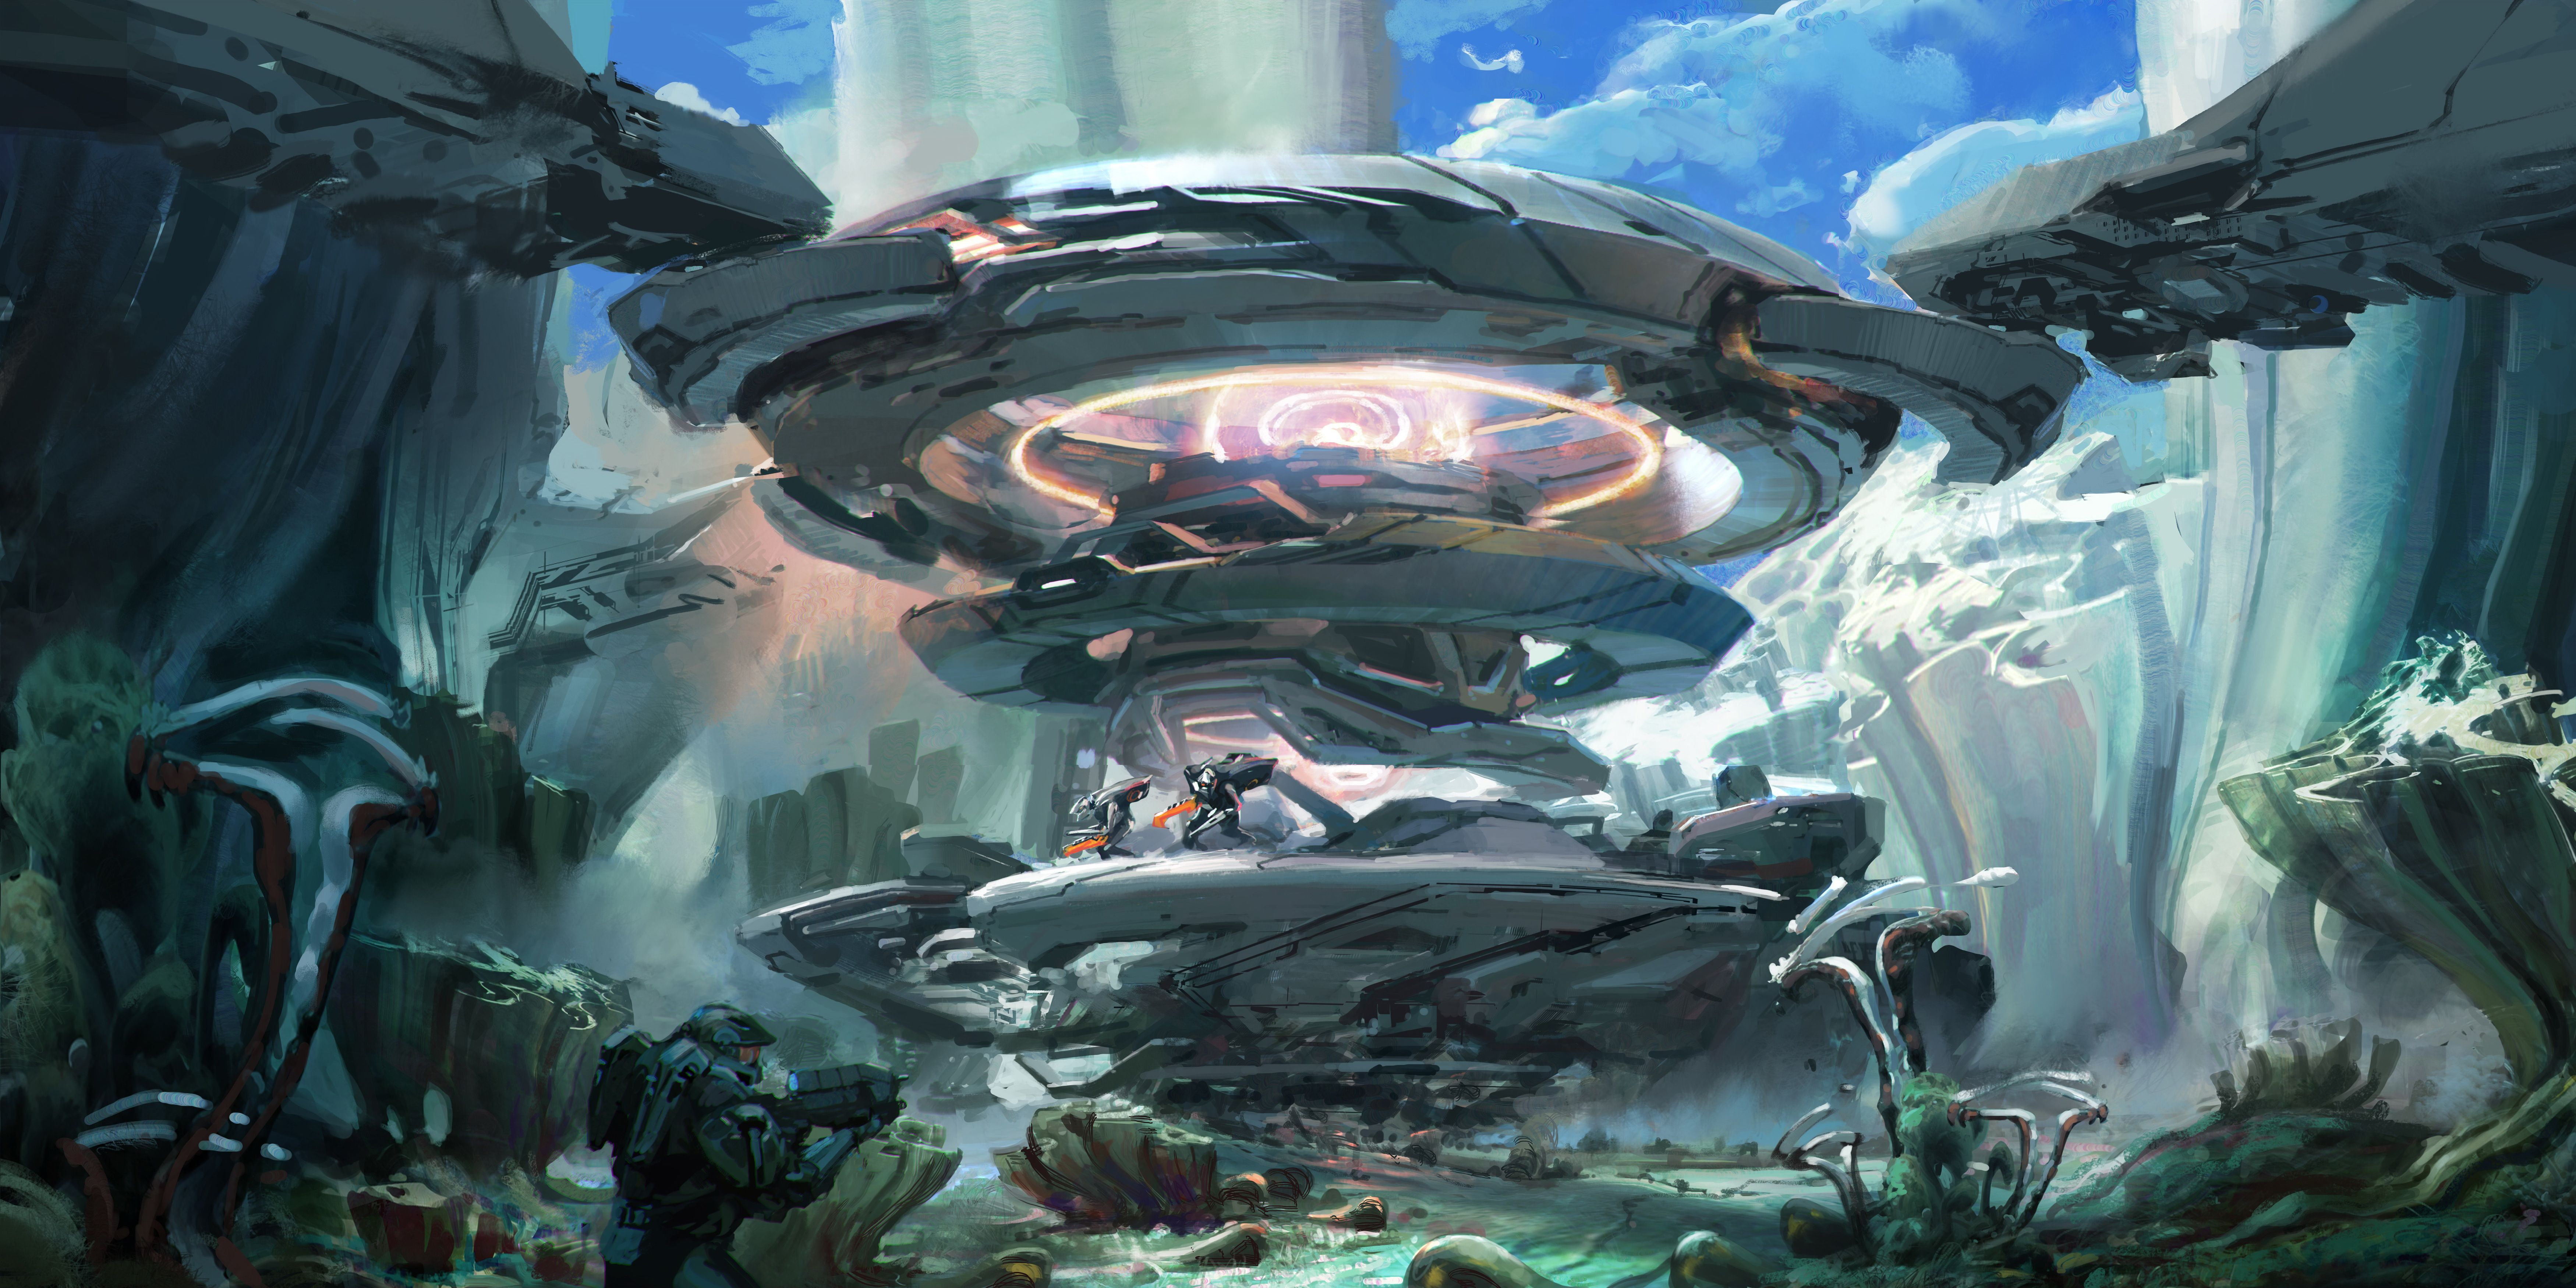 Halo 5 Guardians Awesome Wallpaper Concept Art Halo 5 Art